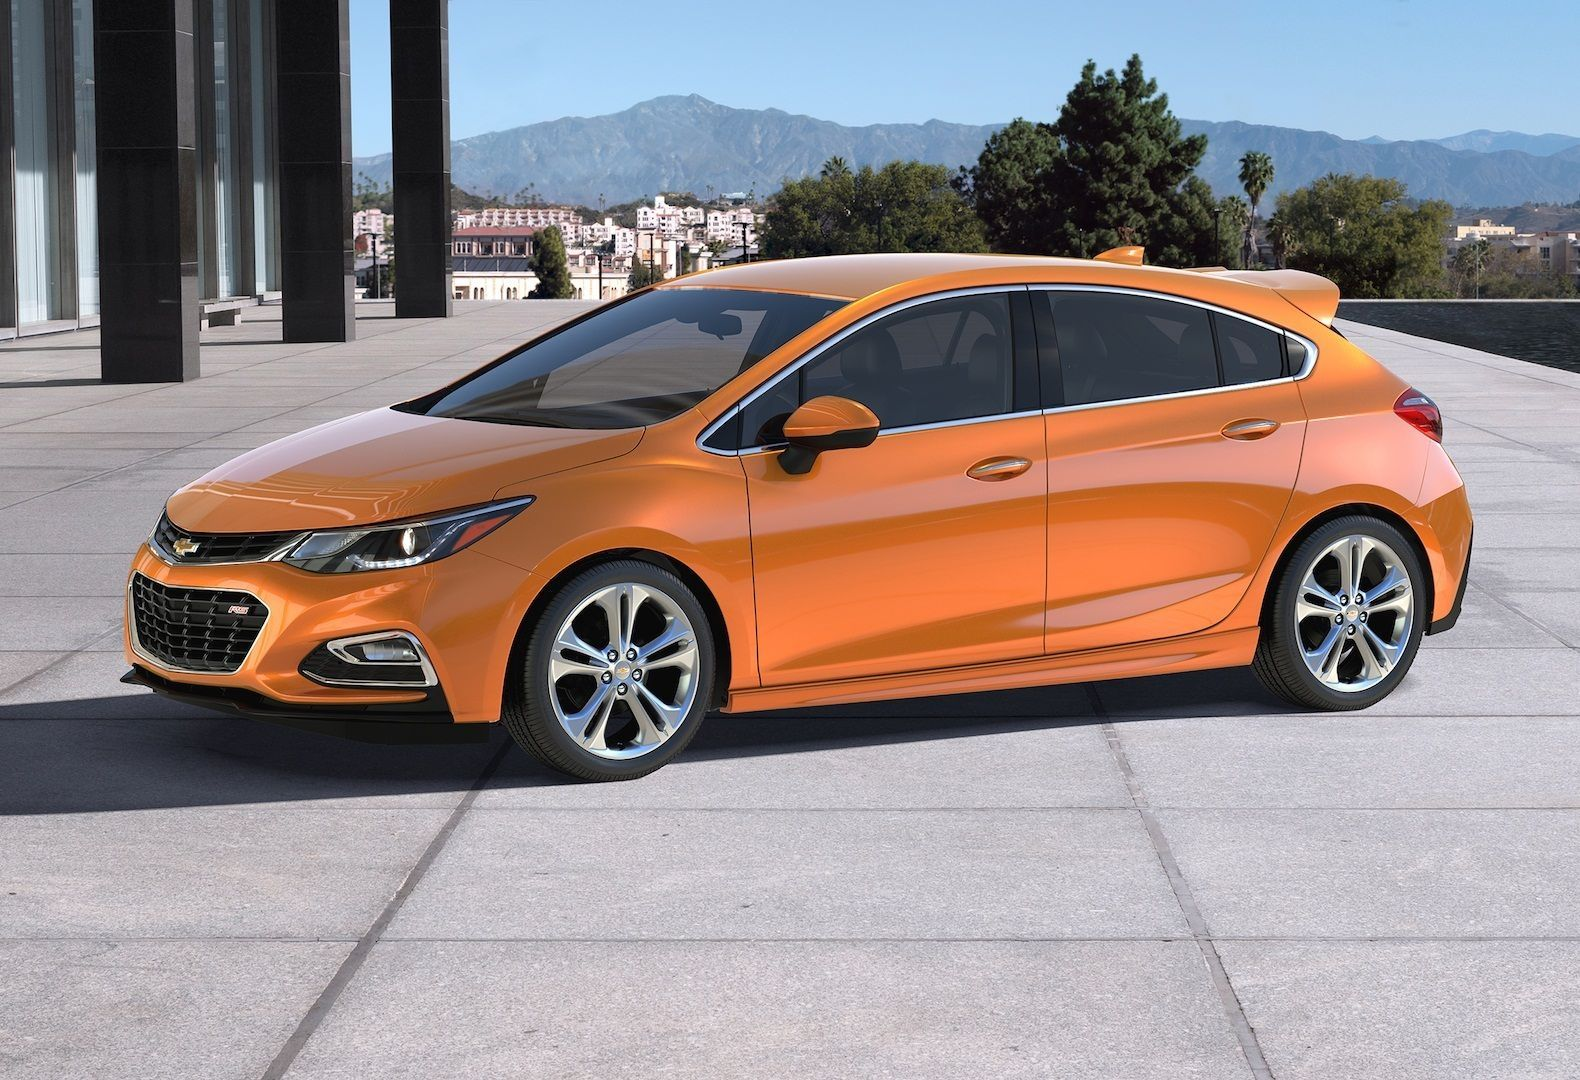 57 All New 2020 Chevrolet Cruze Configurations